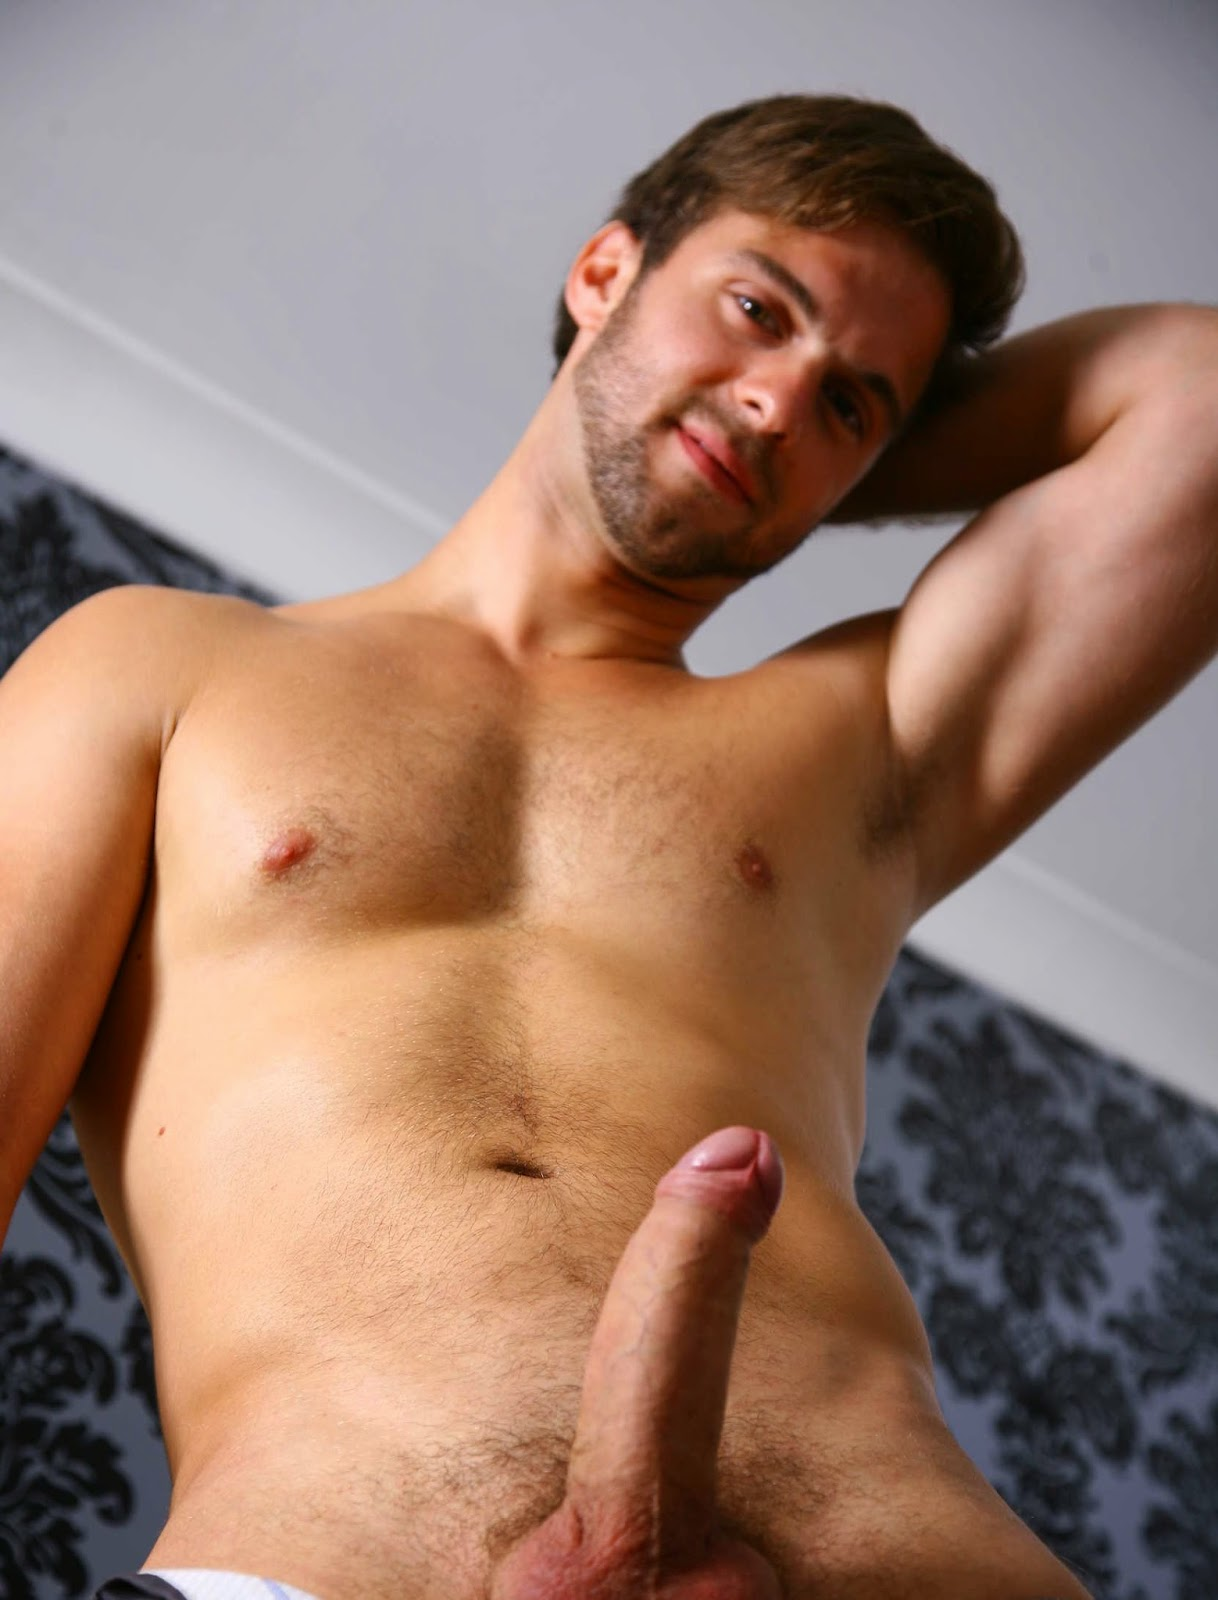 video one porno mexico gay escorts